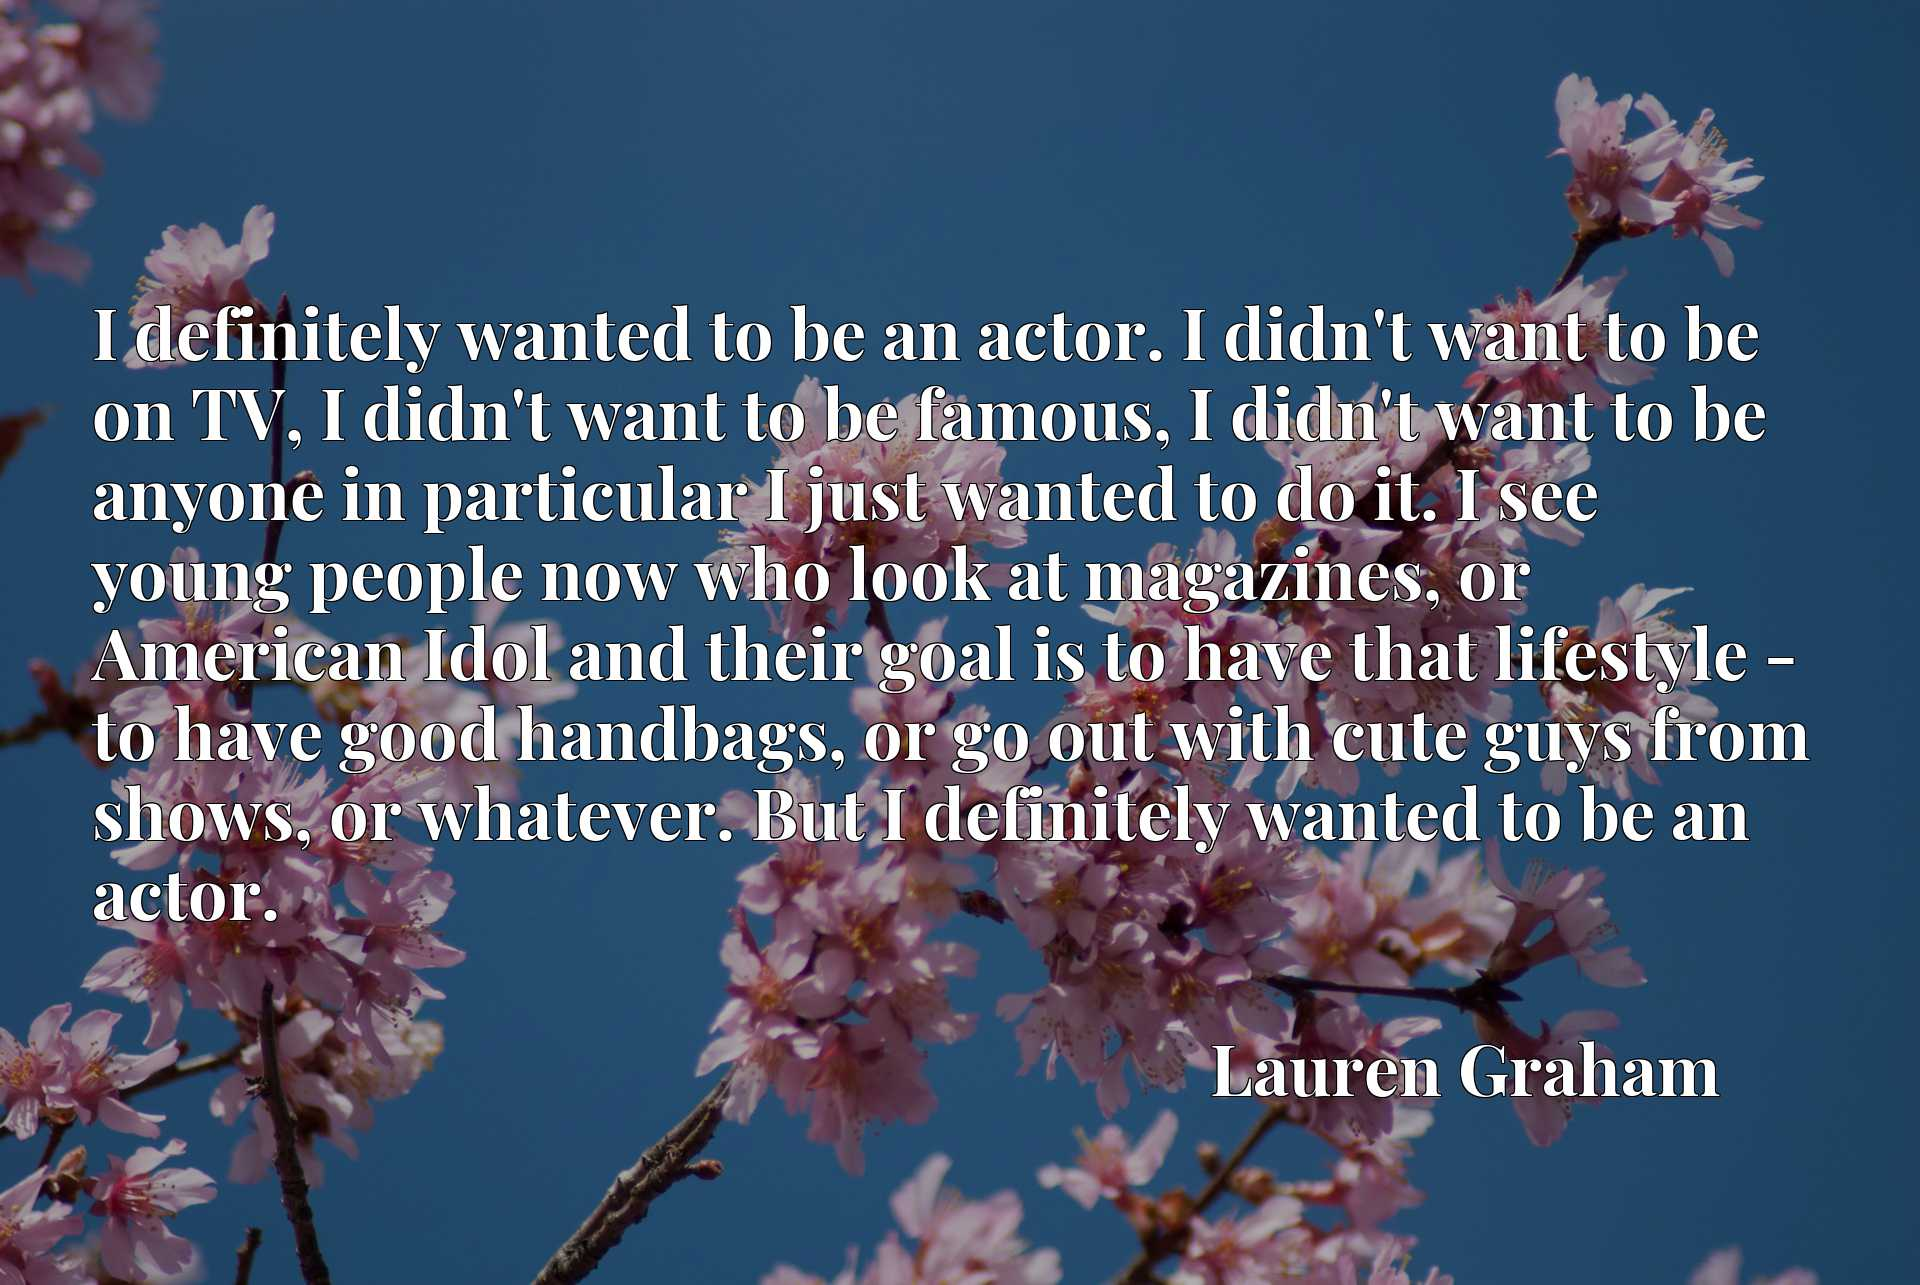 I definitely wanted to be an actor. I didn't want to be on TV, I didn't want to be famous, I didn't want to be anyone in particular I just wanted to do it. I see young people now who look at magazines, or American Idol and their goal is to have that lifestyle - to have good handbags, or go out with cute guys from shows, or whatever. But I definitely wanted to be an actor.